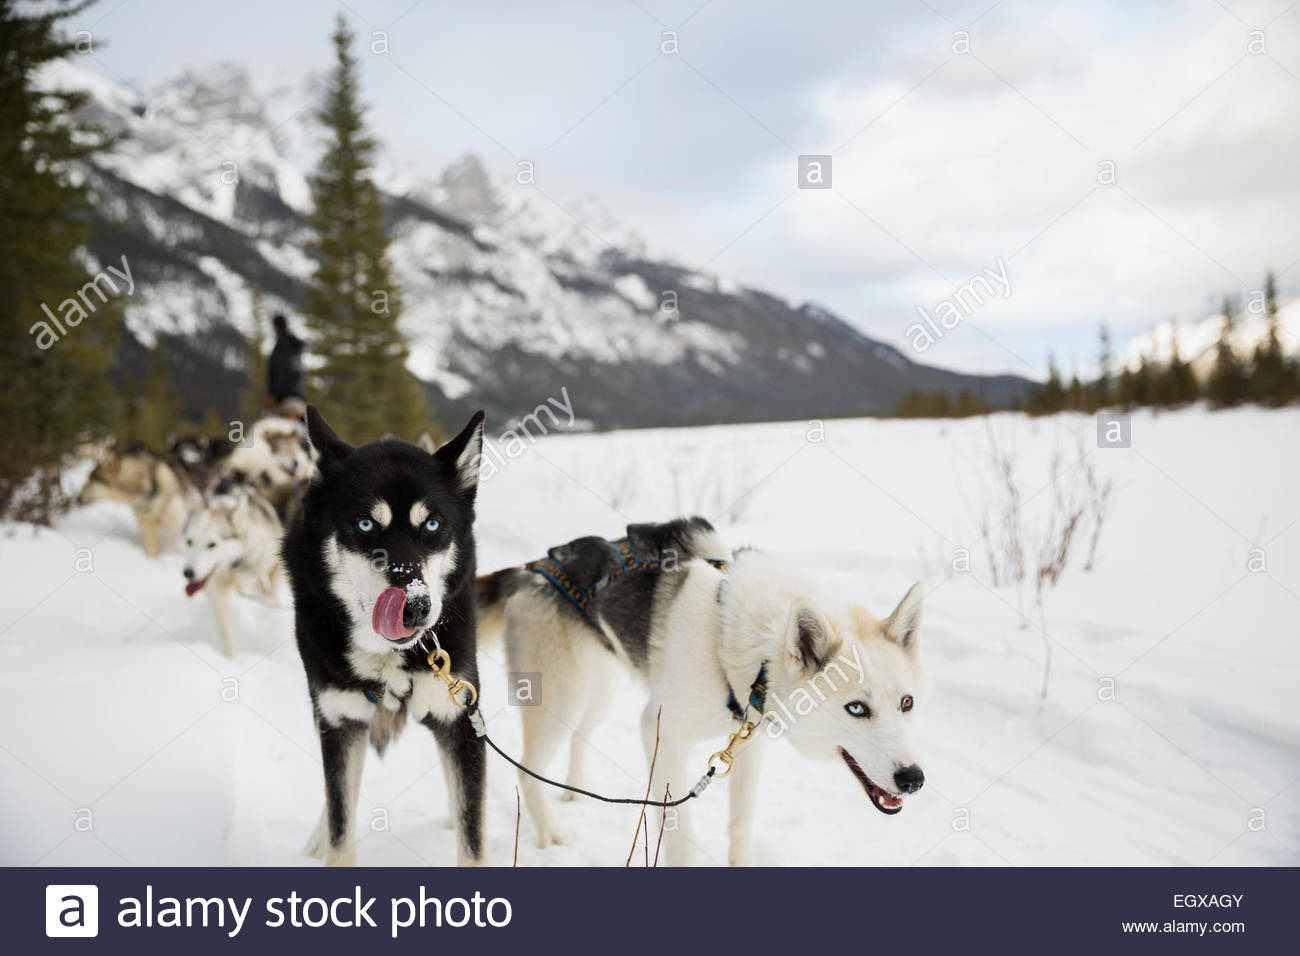 Lead dogs of dogsled in snowy field - Stock Image